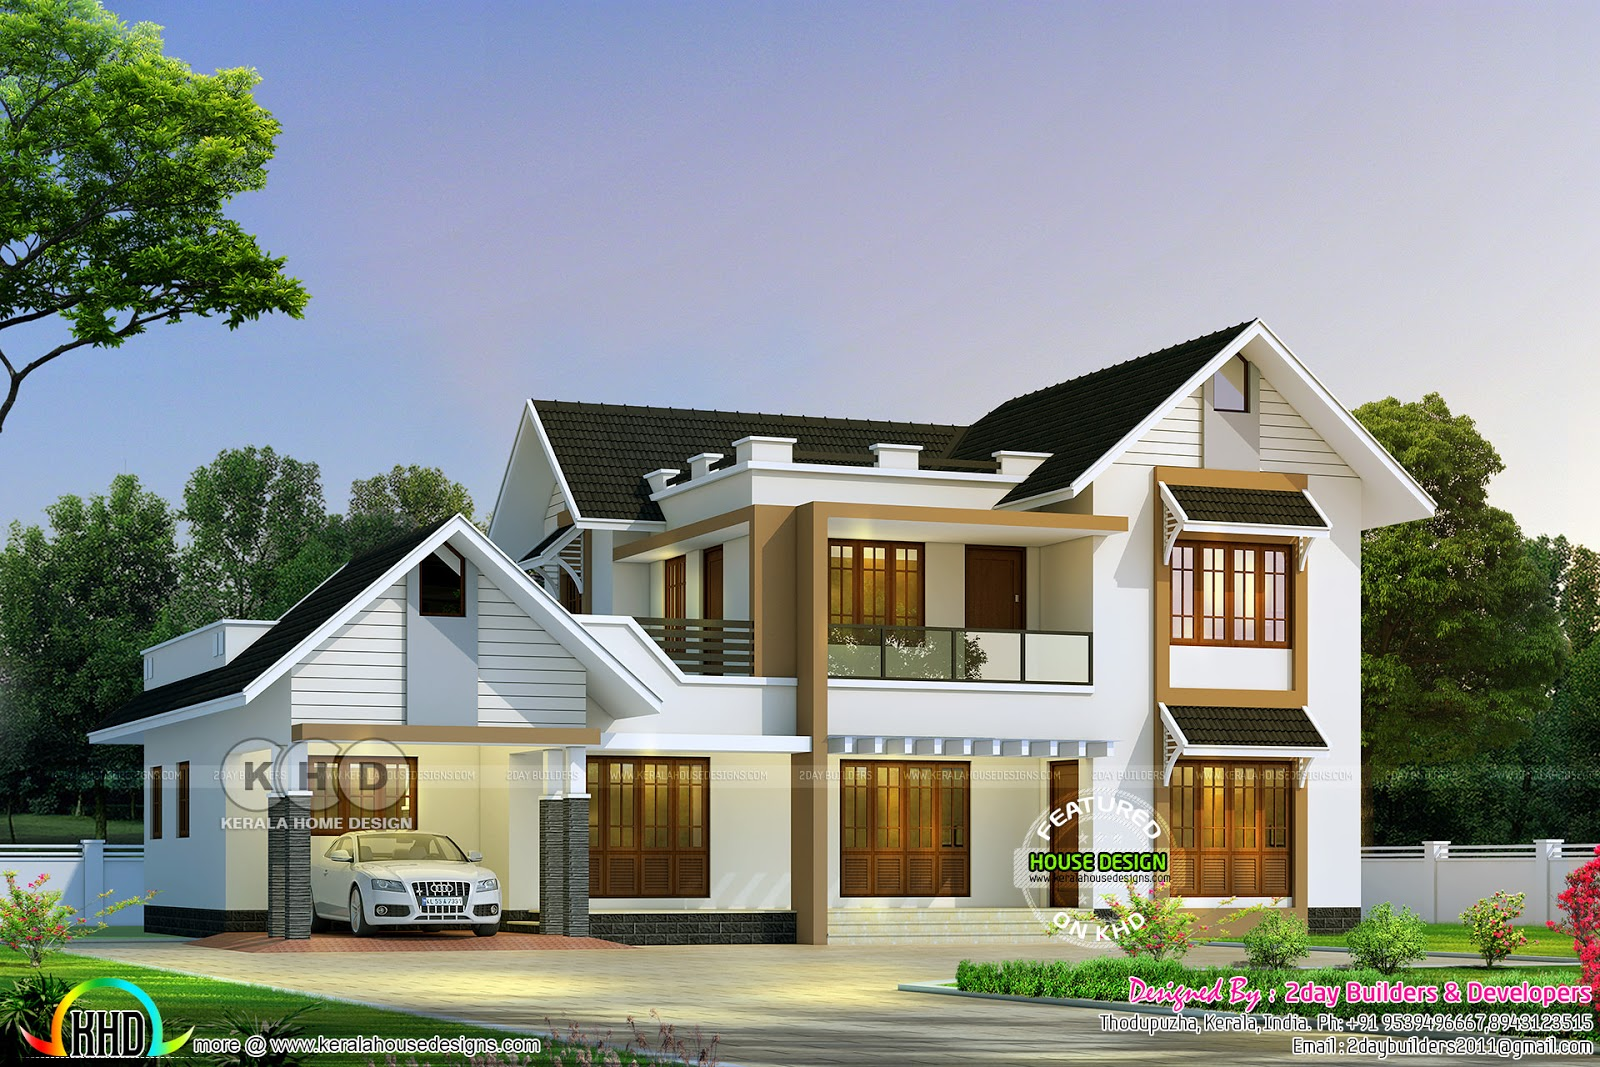 2017 kerala home design and floor plans for Kerala house plans and designs